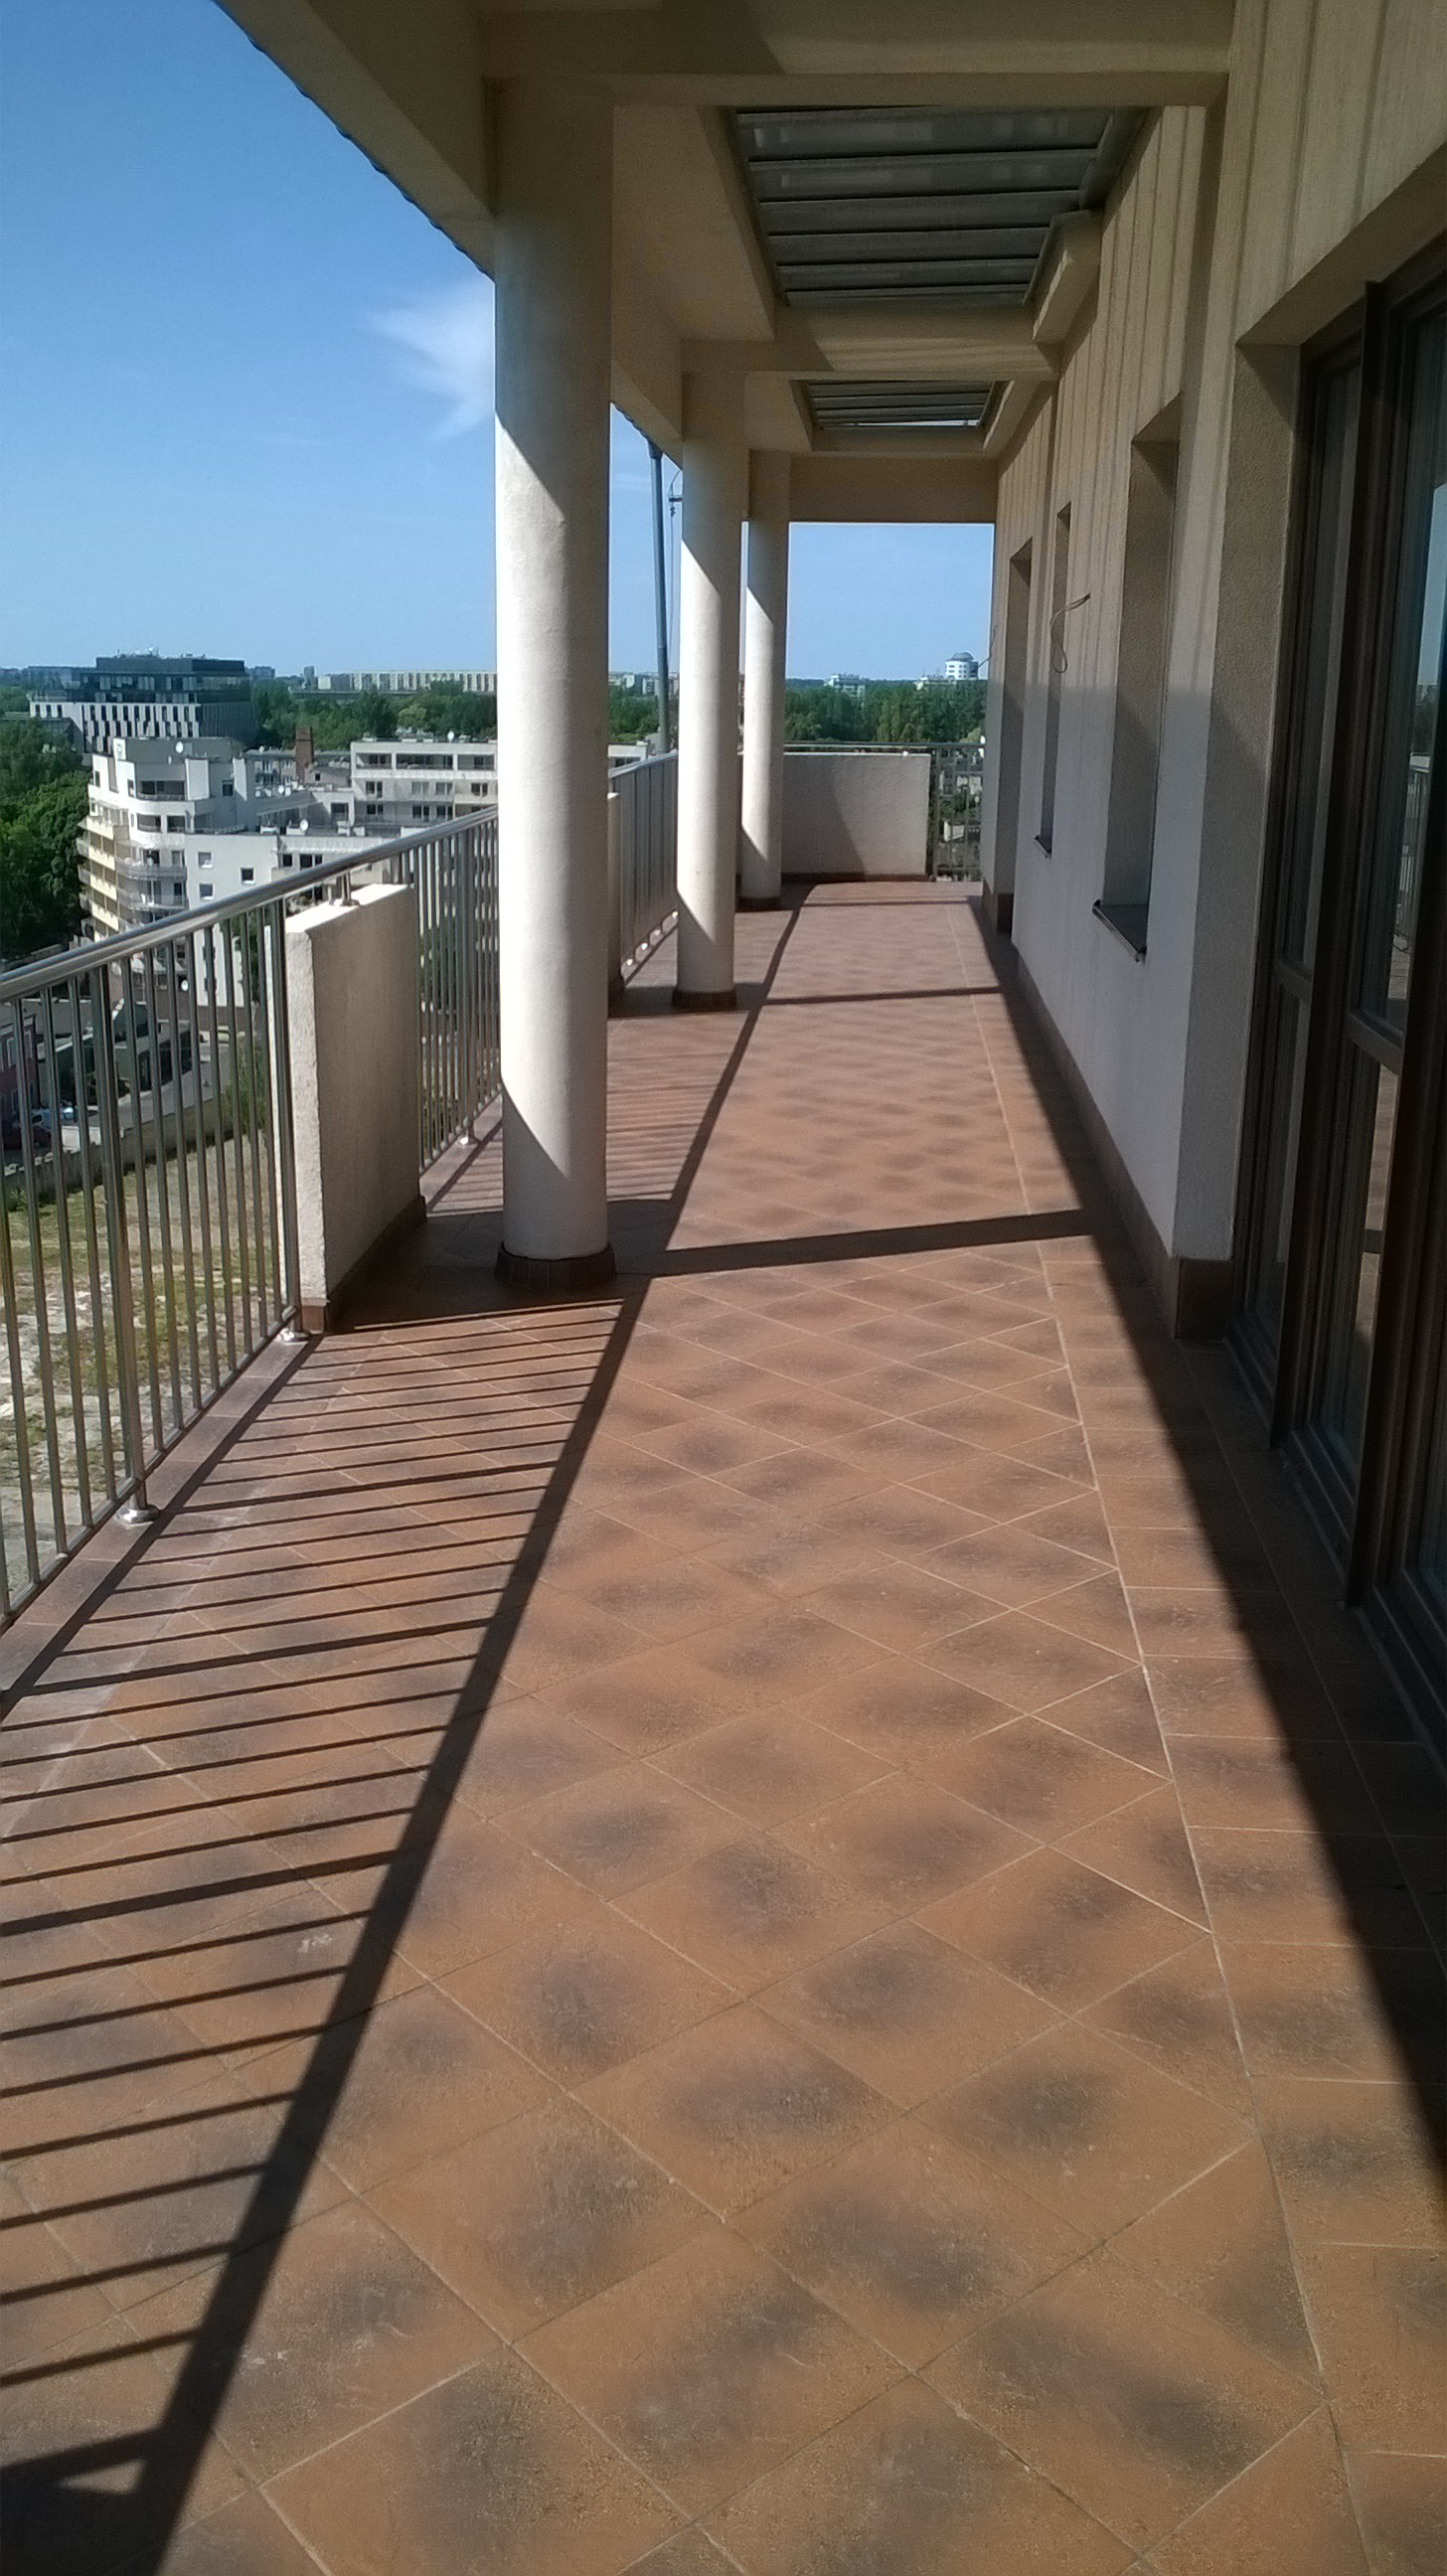 Balcony Over Tiles Waterproofing Poland Alchimica